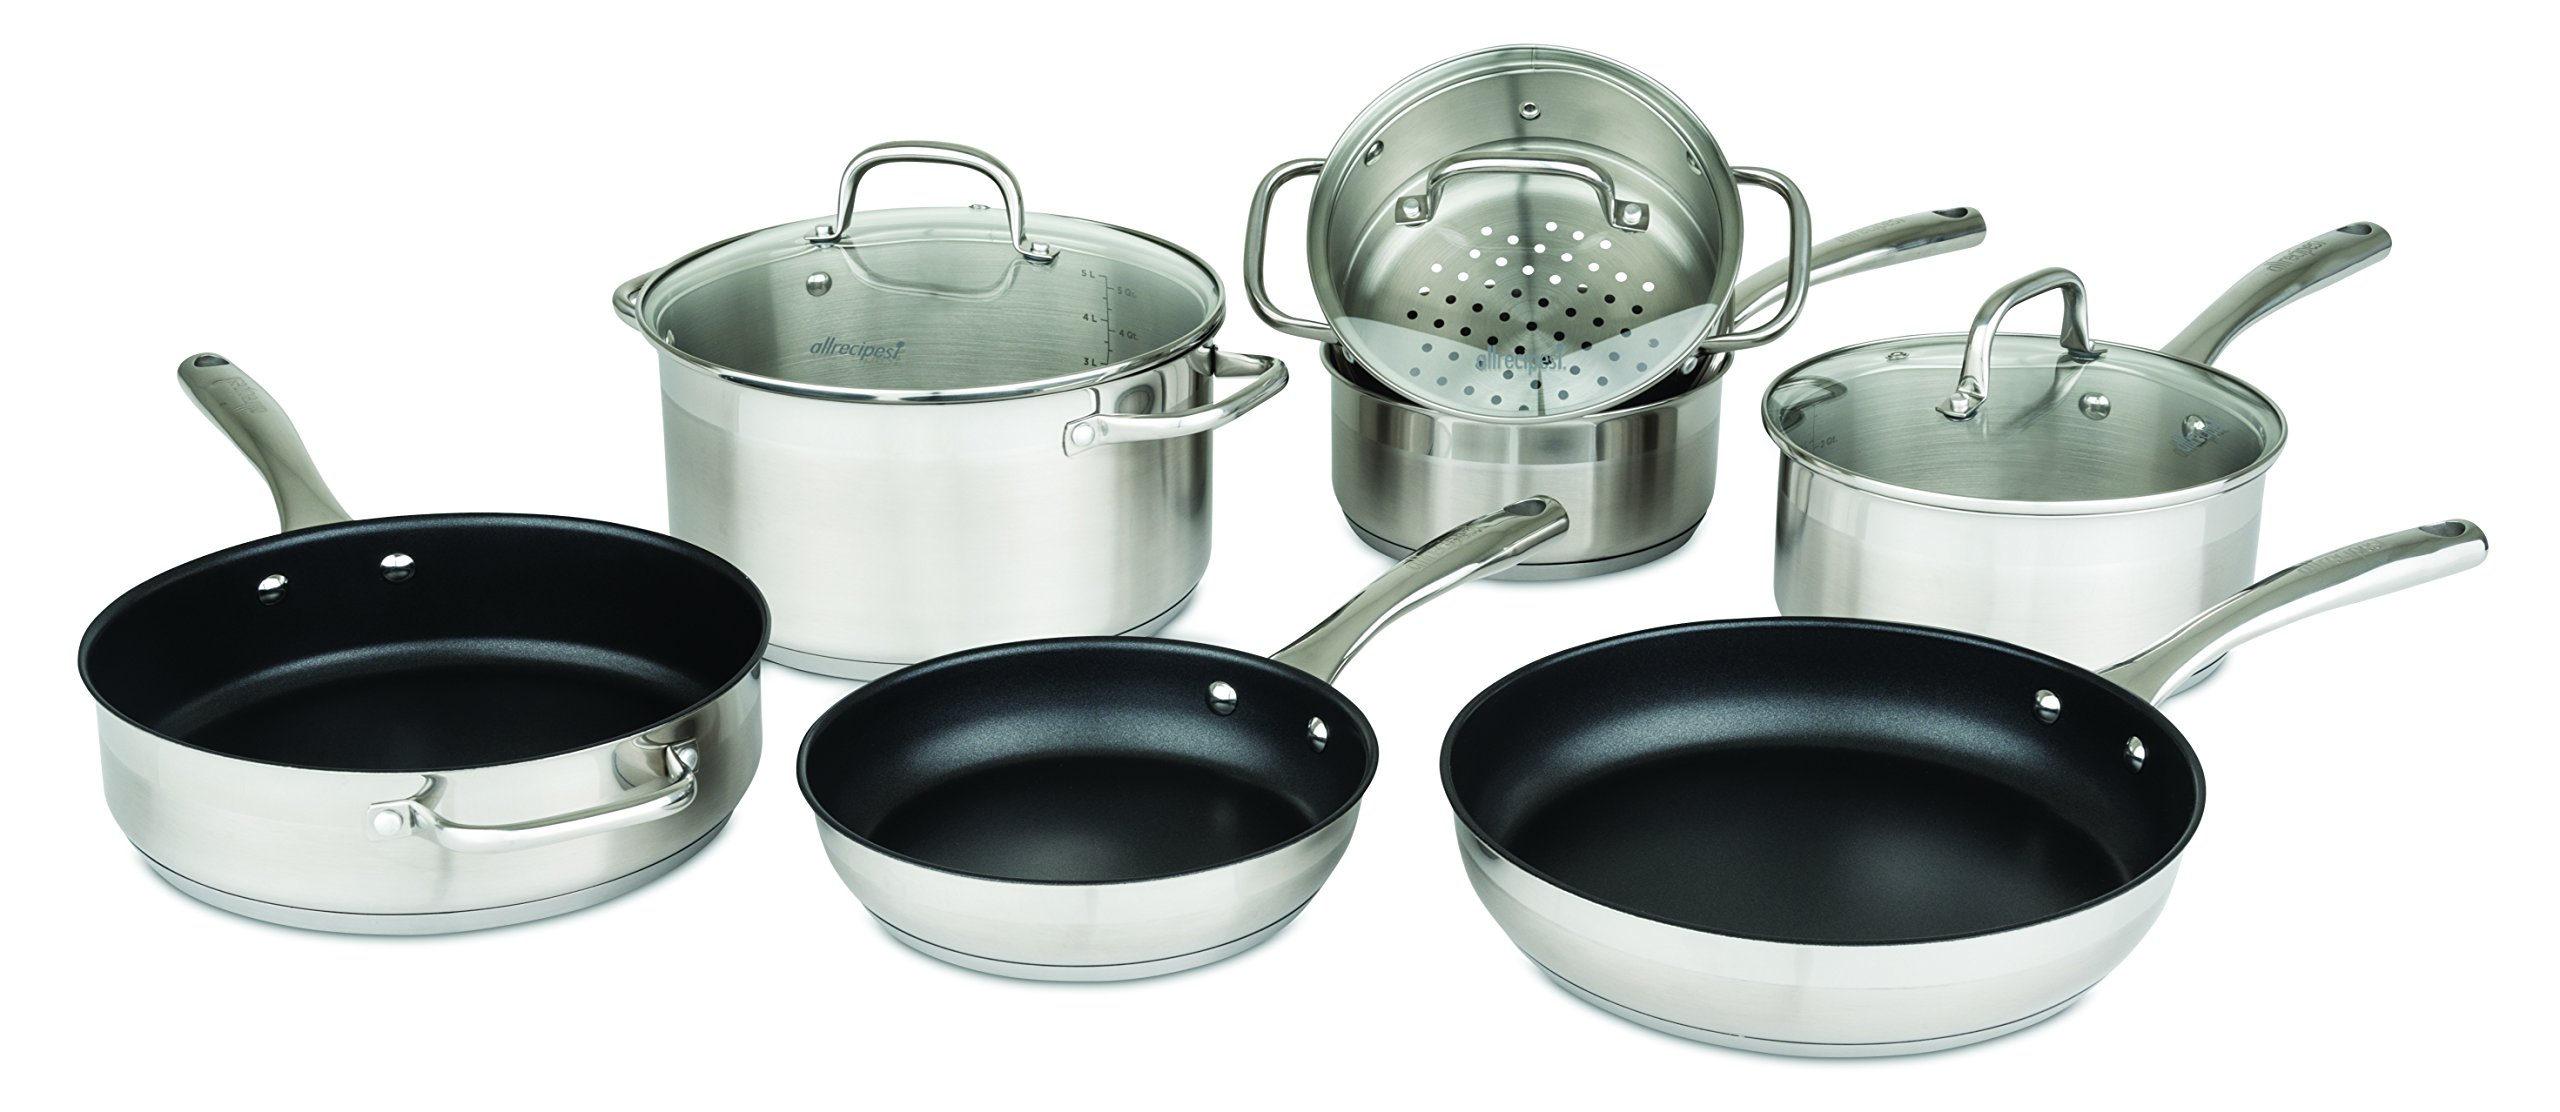 Allrecipes Stainless Steel Cookware Set with Nonstick Fry and Sauté Pans, 10 Piece by Allrecipes